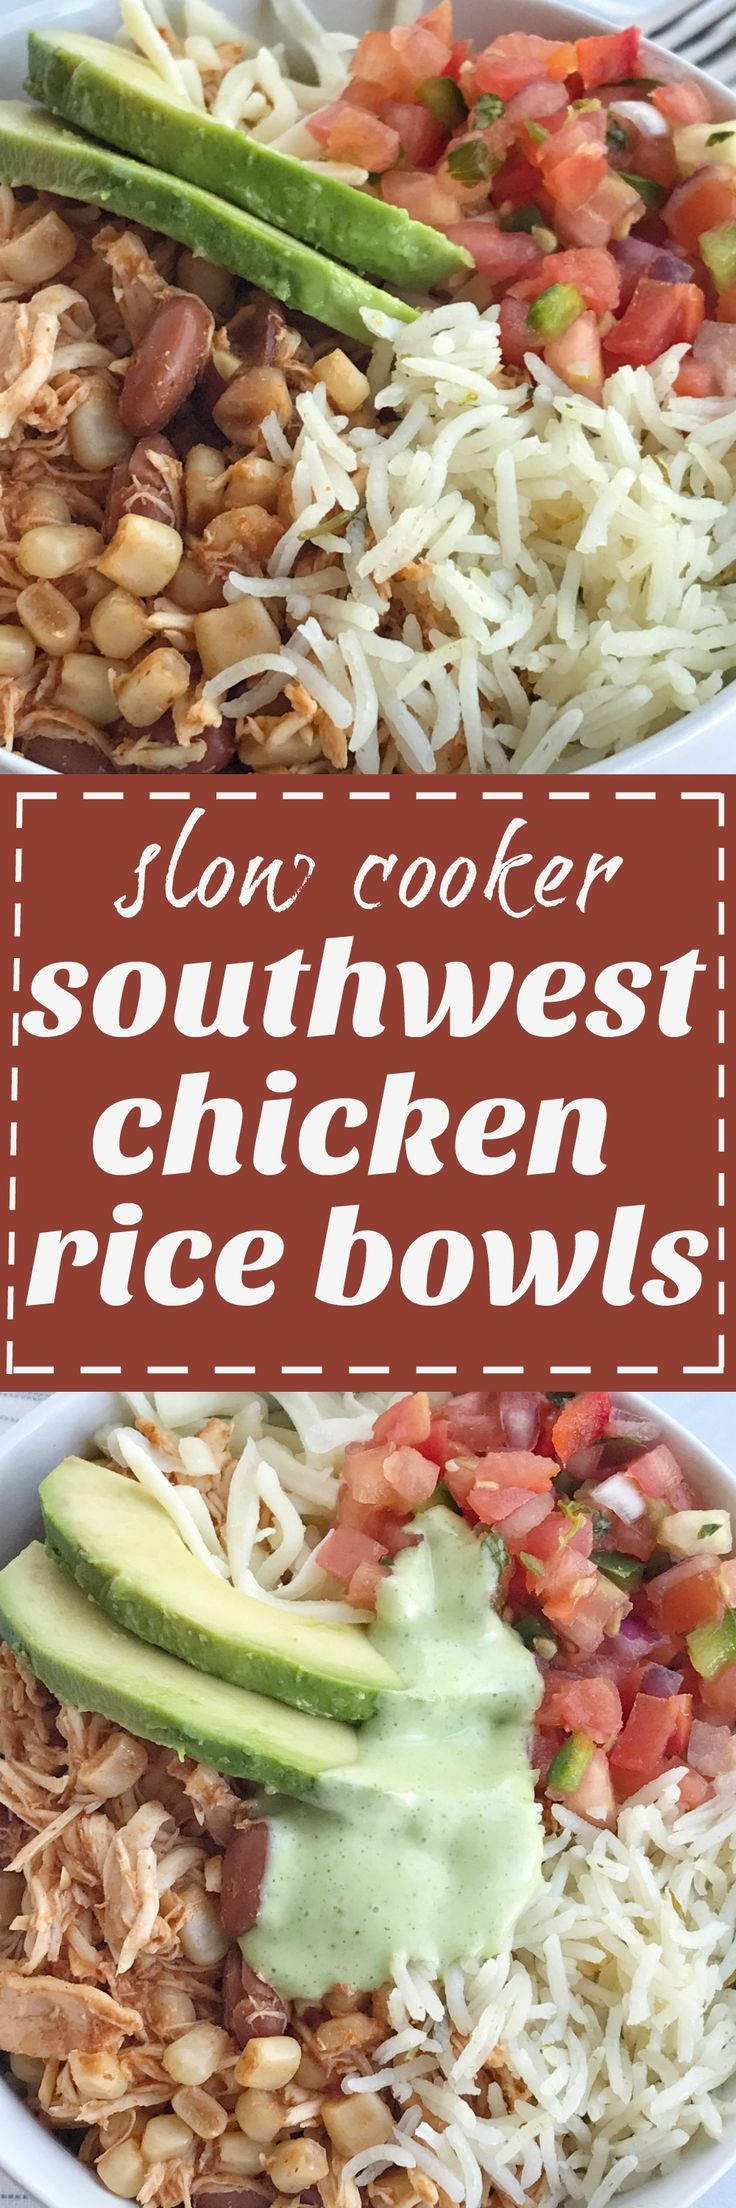 Southwest chicken is made in the slow cooker with only 5 ingredients plus seasonings. Create your own rice bowl with cilantro lime rice topped with southwest chicken, and loaded with all your favorite toppings! These are so delicious and definitely a family approved dinner.